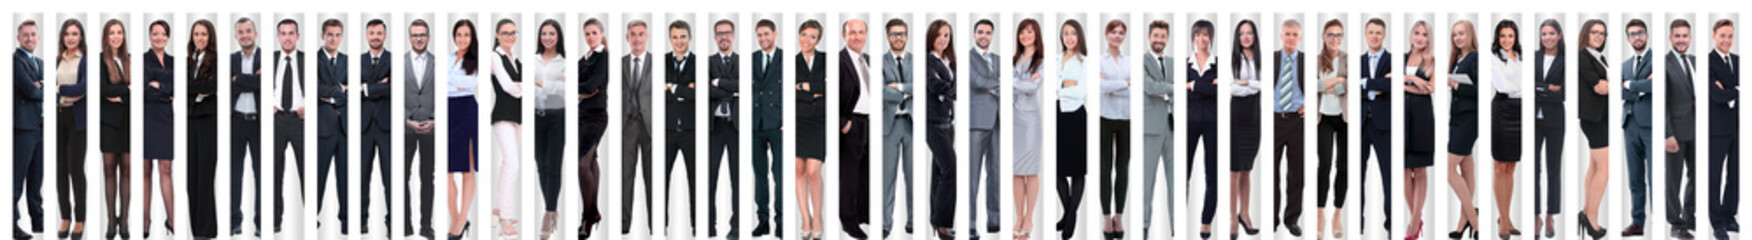 panoramic collage of a large and successful business team